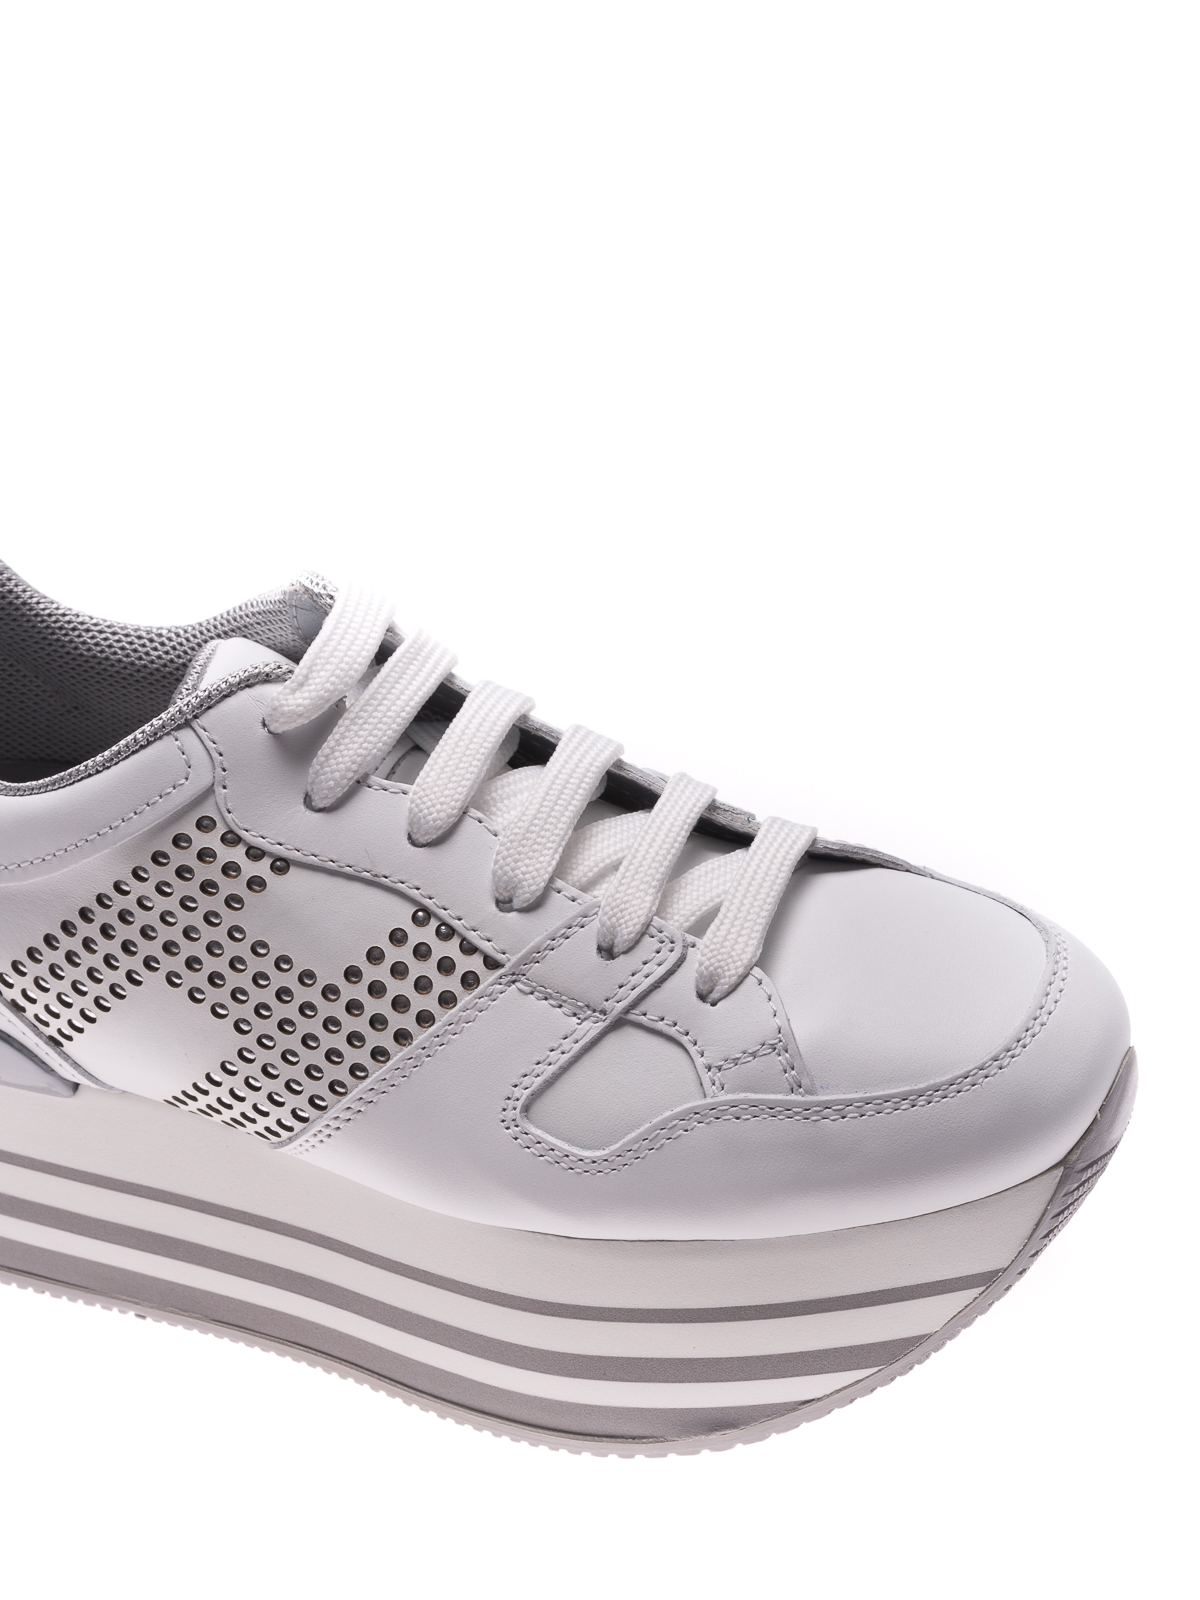 Hogan - H283 Maxi white leather sneakers - trainers ...